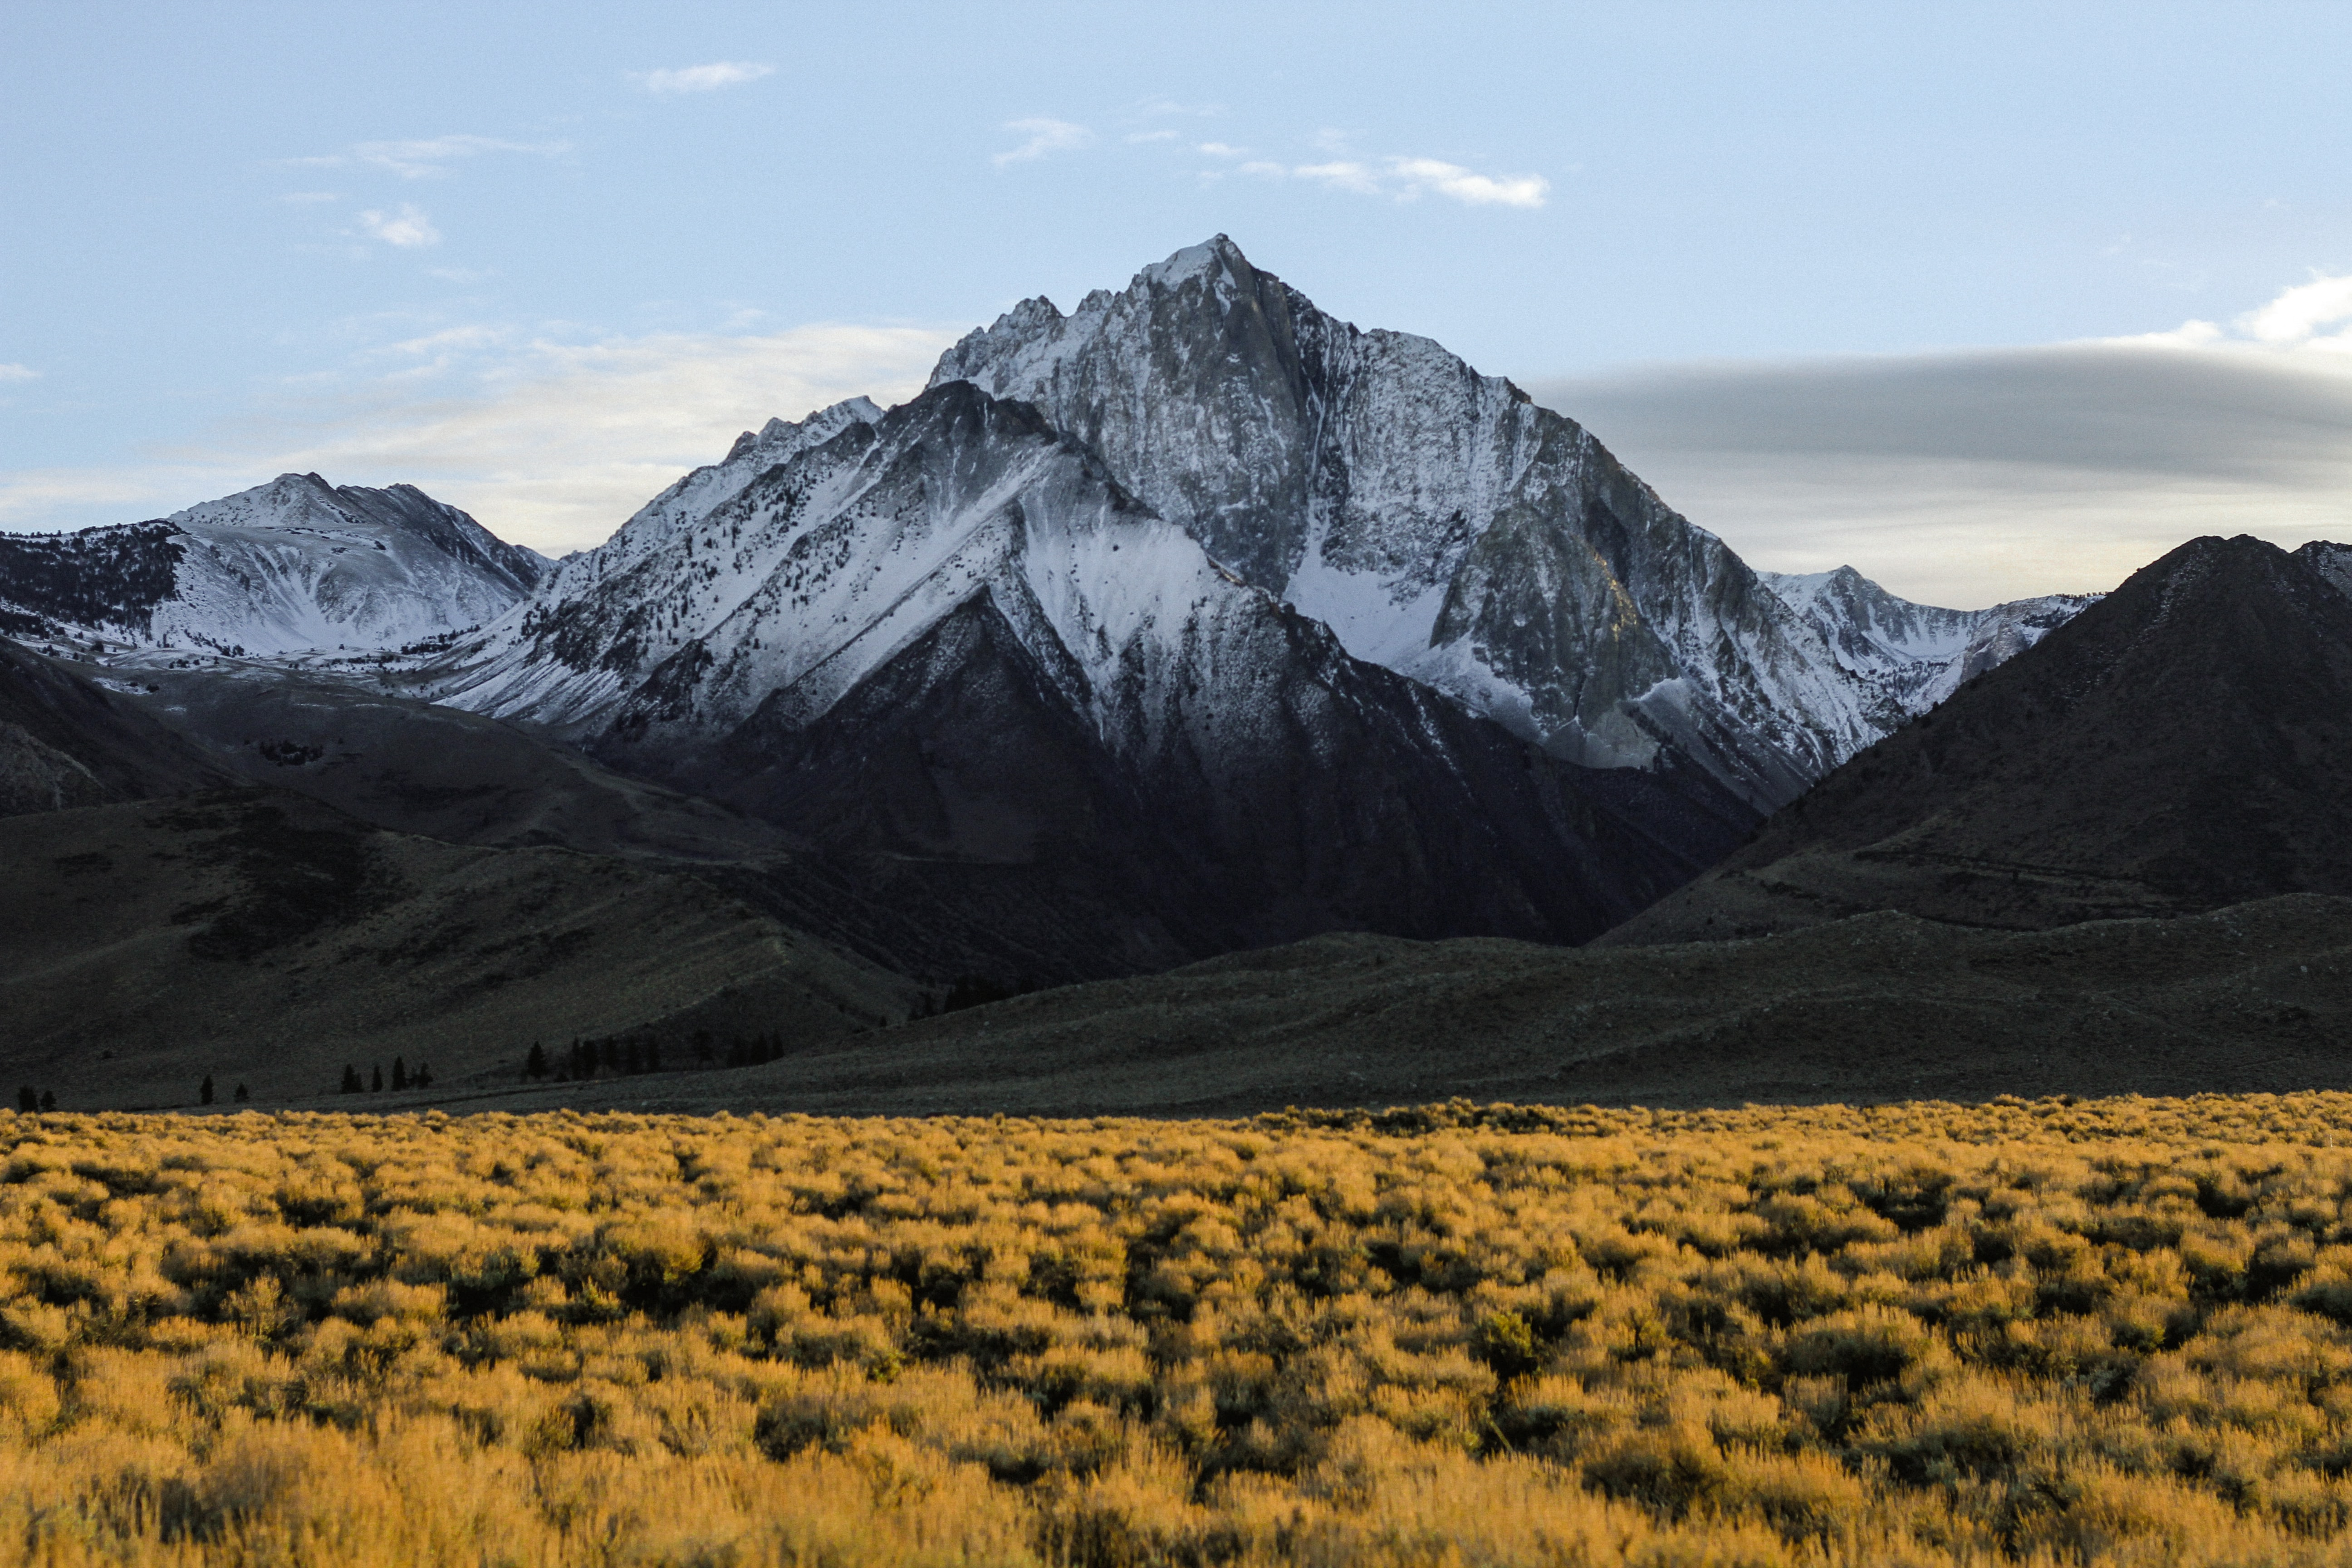 photography of a mountain during day time